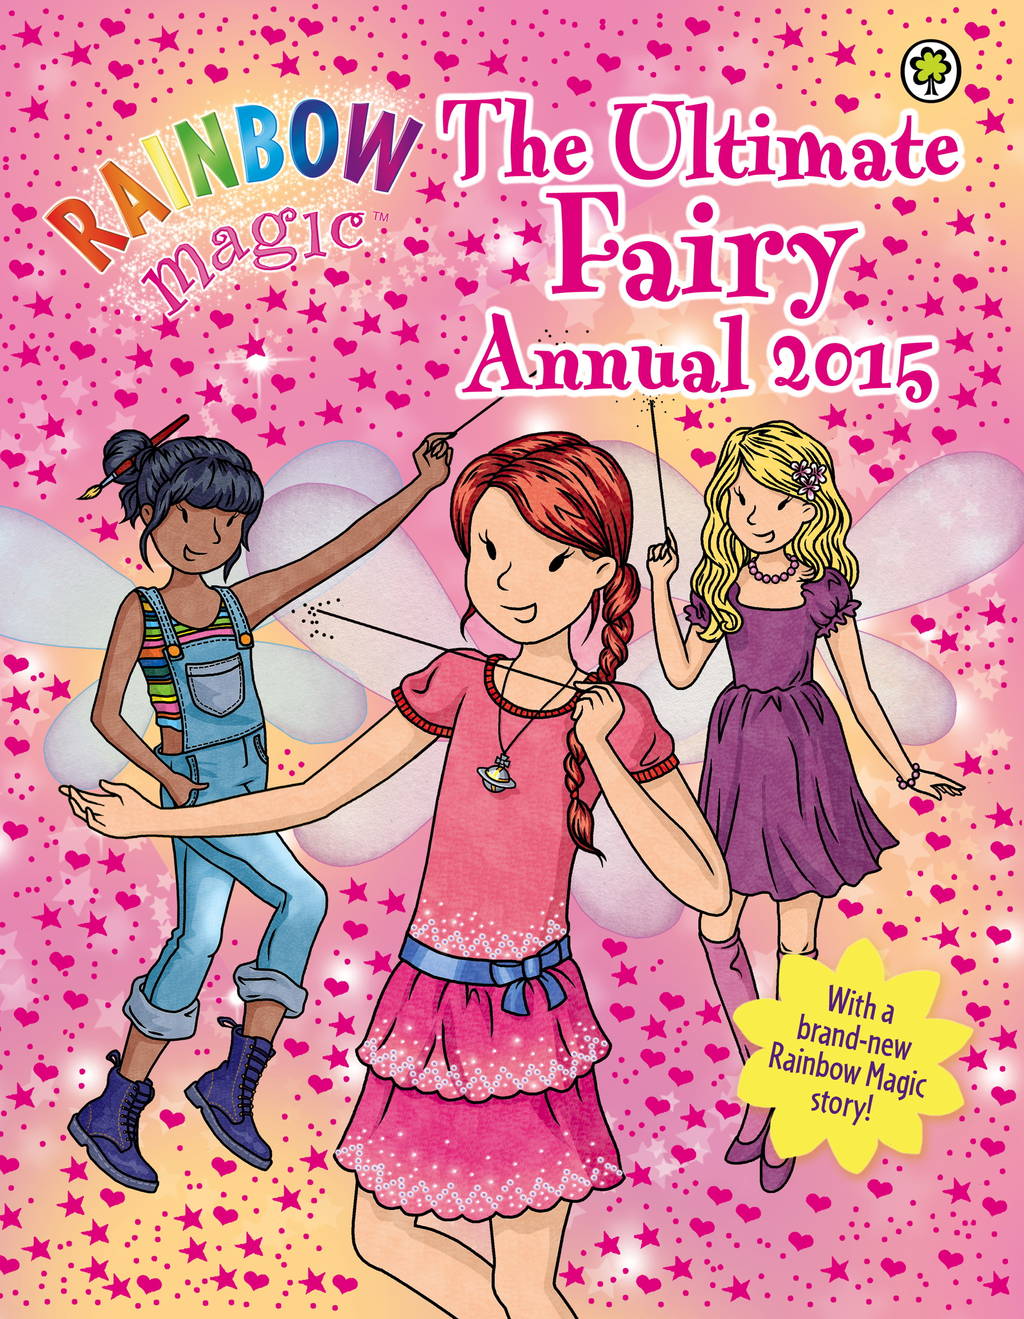 Rainbow Magic: The Ultimate Fairy Annual 2015